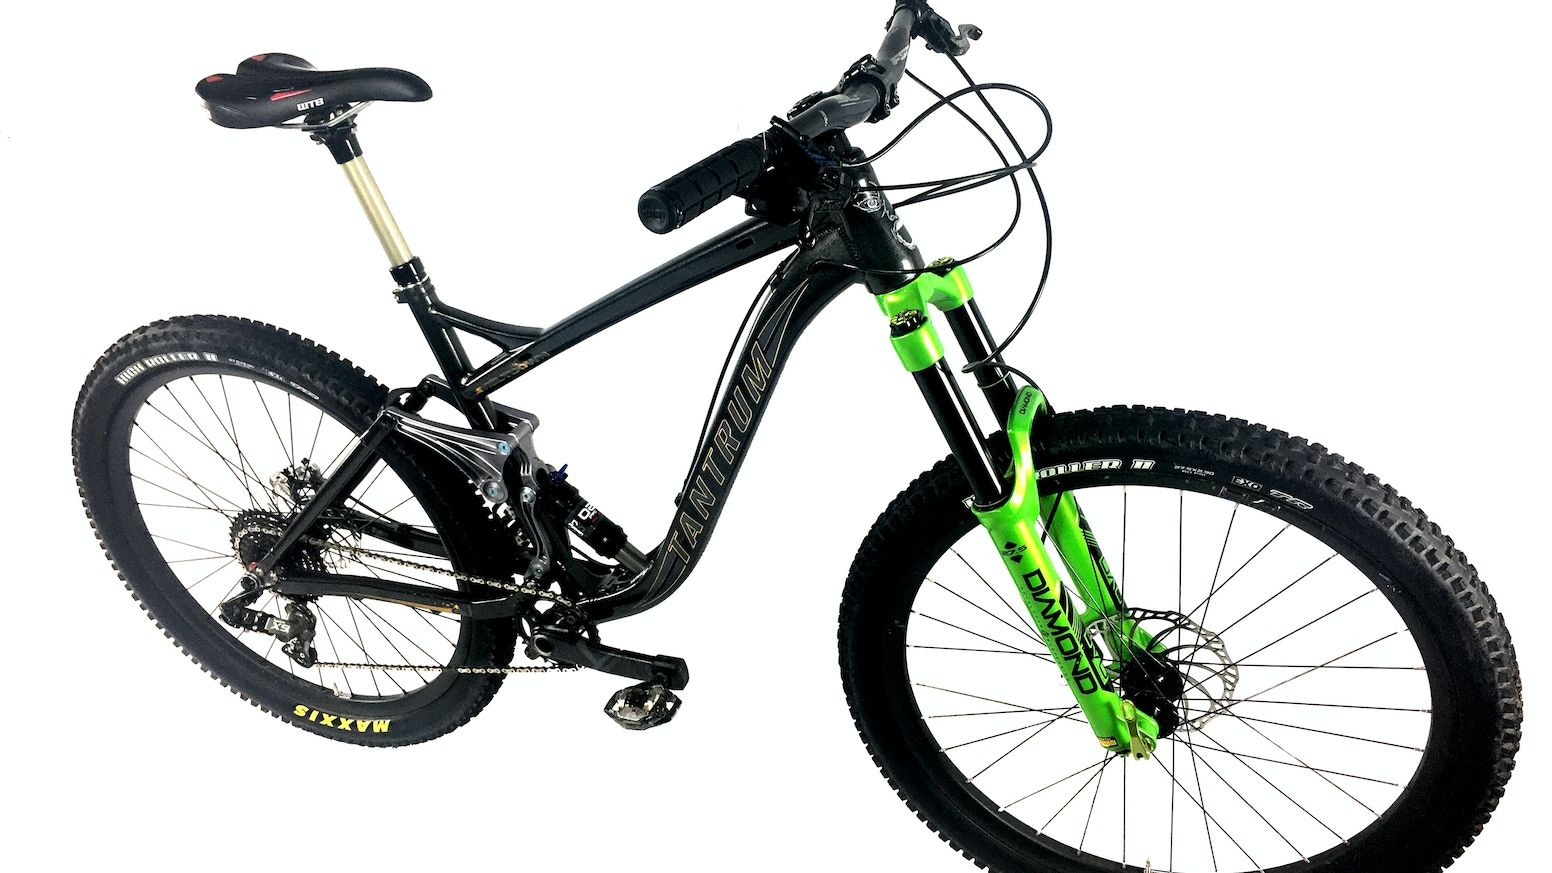 """The Missing Link """"does the impossible; pedals like a hardtail and delivers a plush ride over bumps - without levers or electronics"""""""